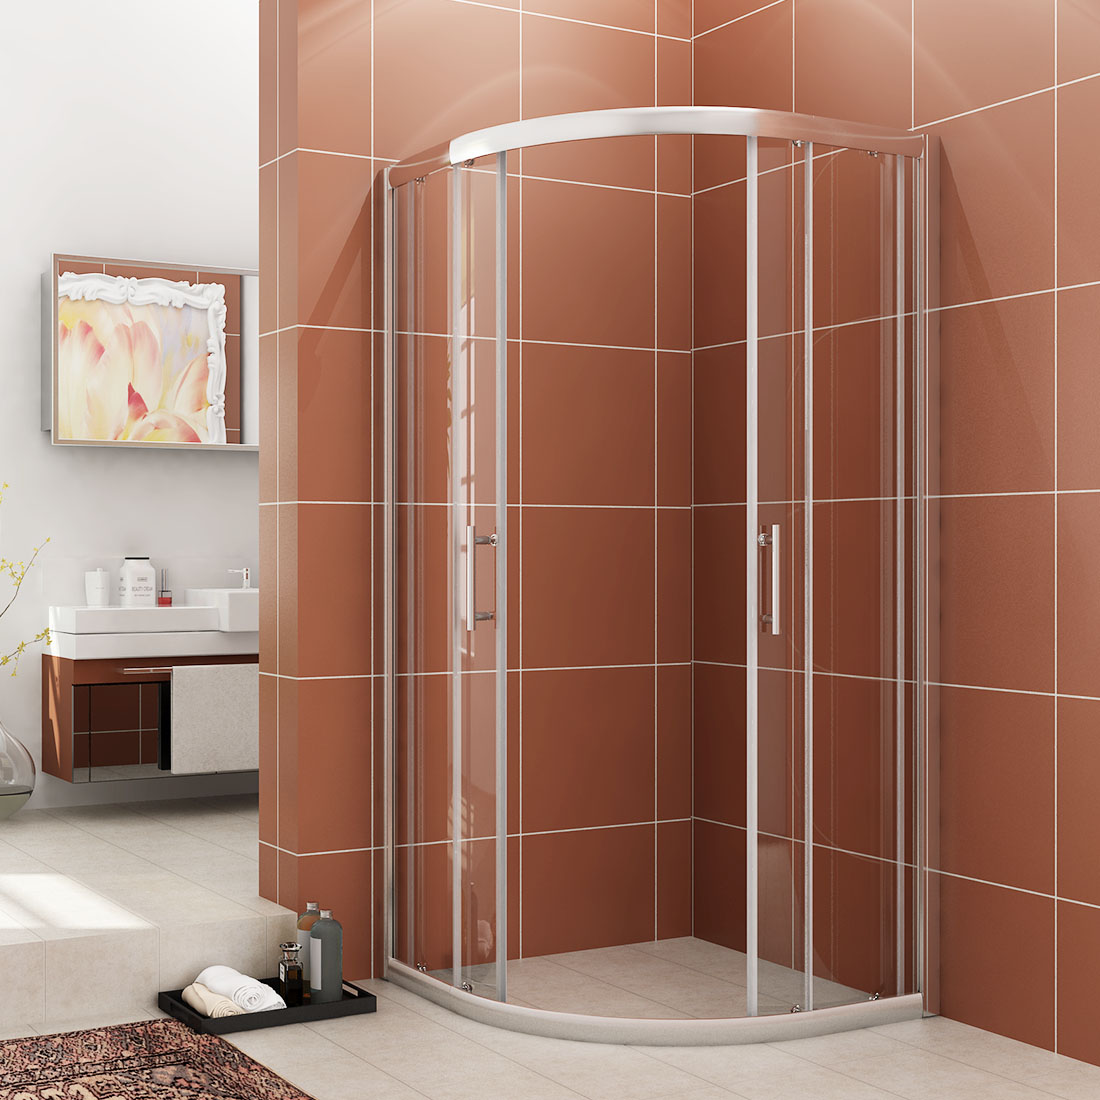 Details About Sunny Shower Semi Frameless Corner Neo Round Sliding Shower Enclosure In Chrome